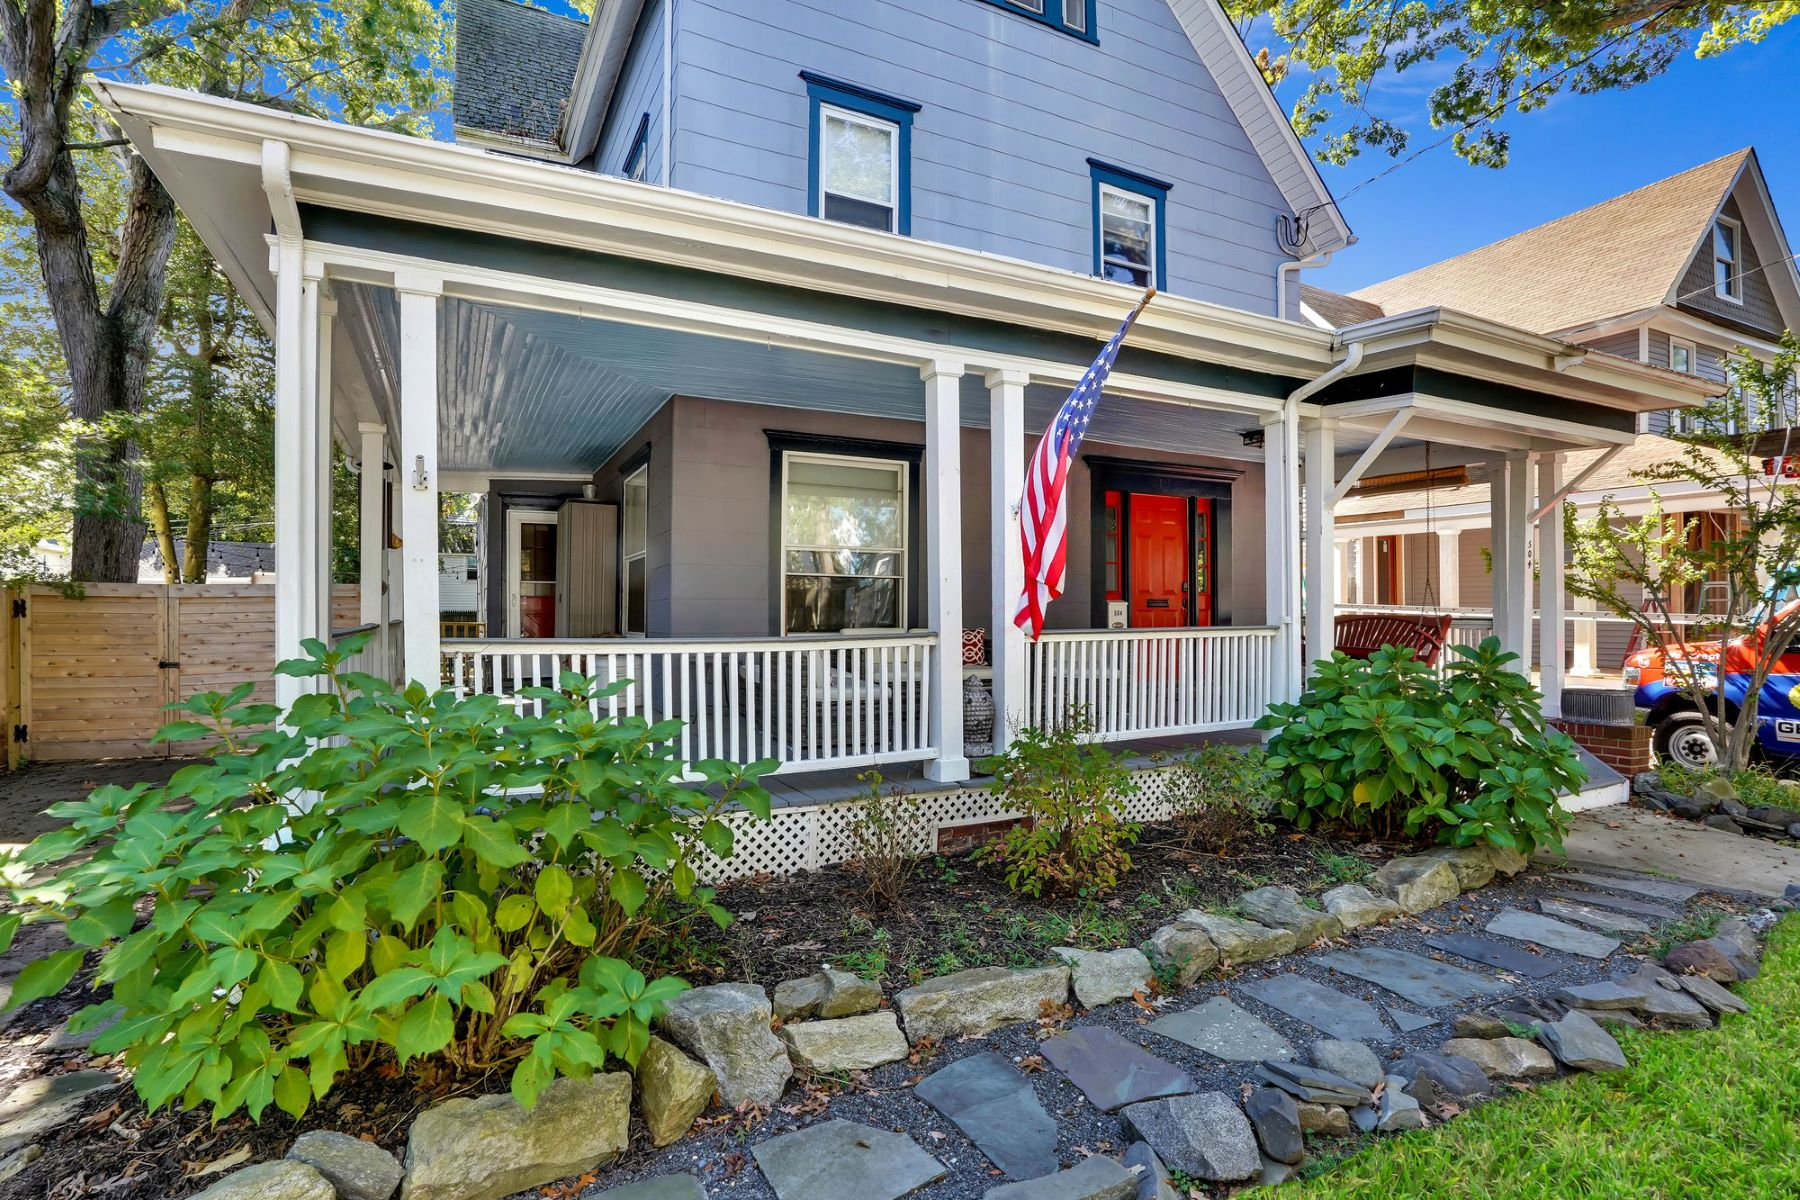 Single Family Homes for Sale at Single or Multi Family in Asbury Park 504 7th Avenue Asbury Park, New Jersey 07712 United States